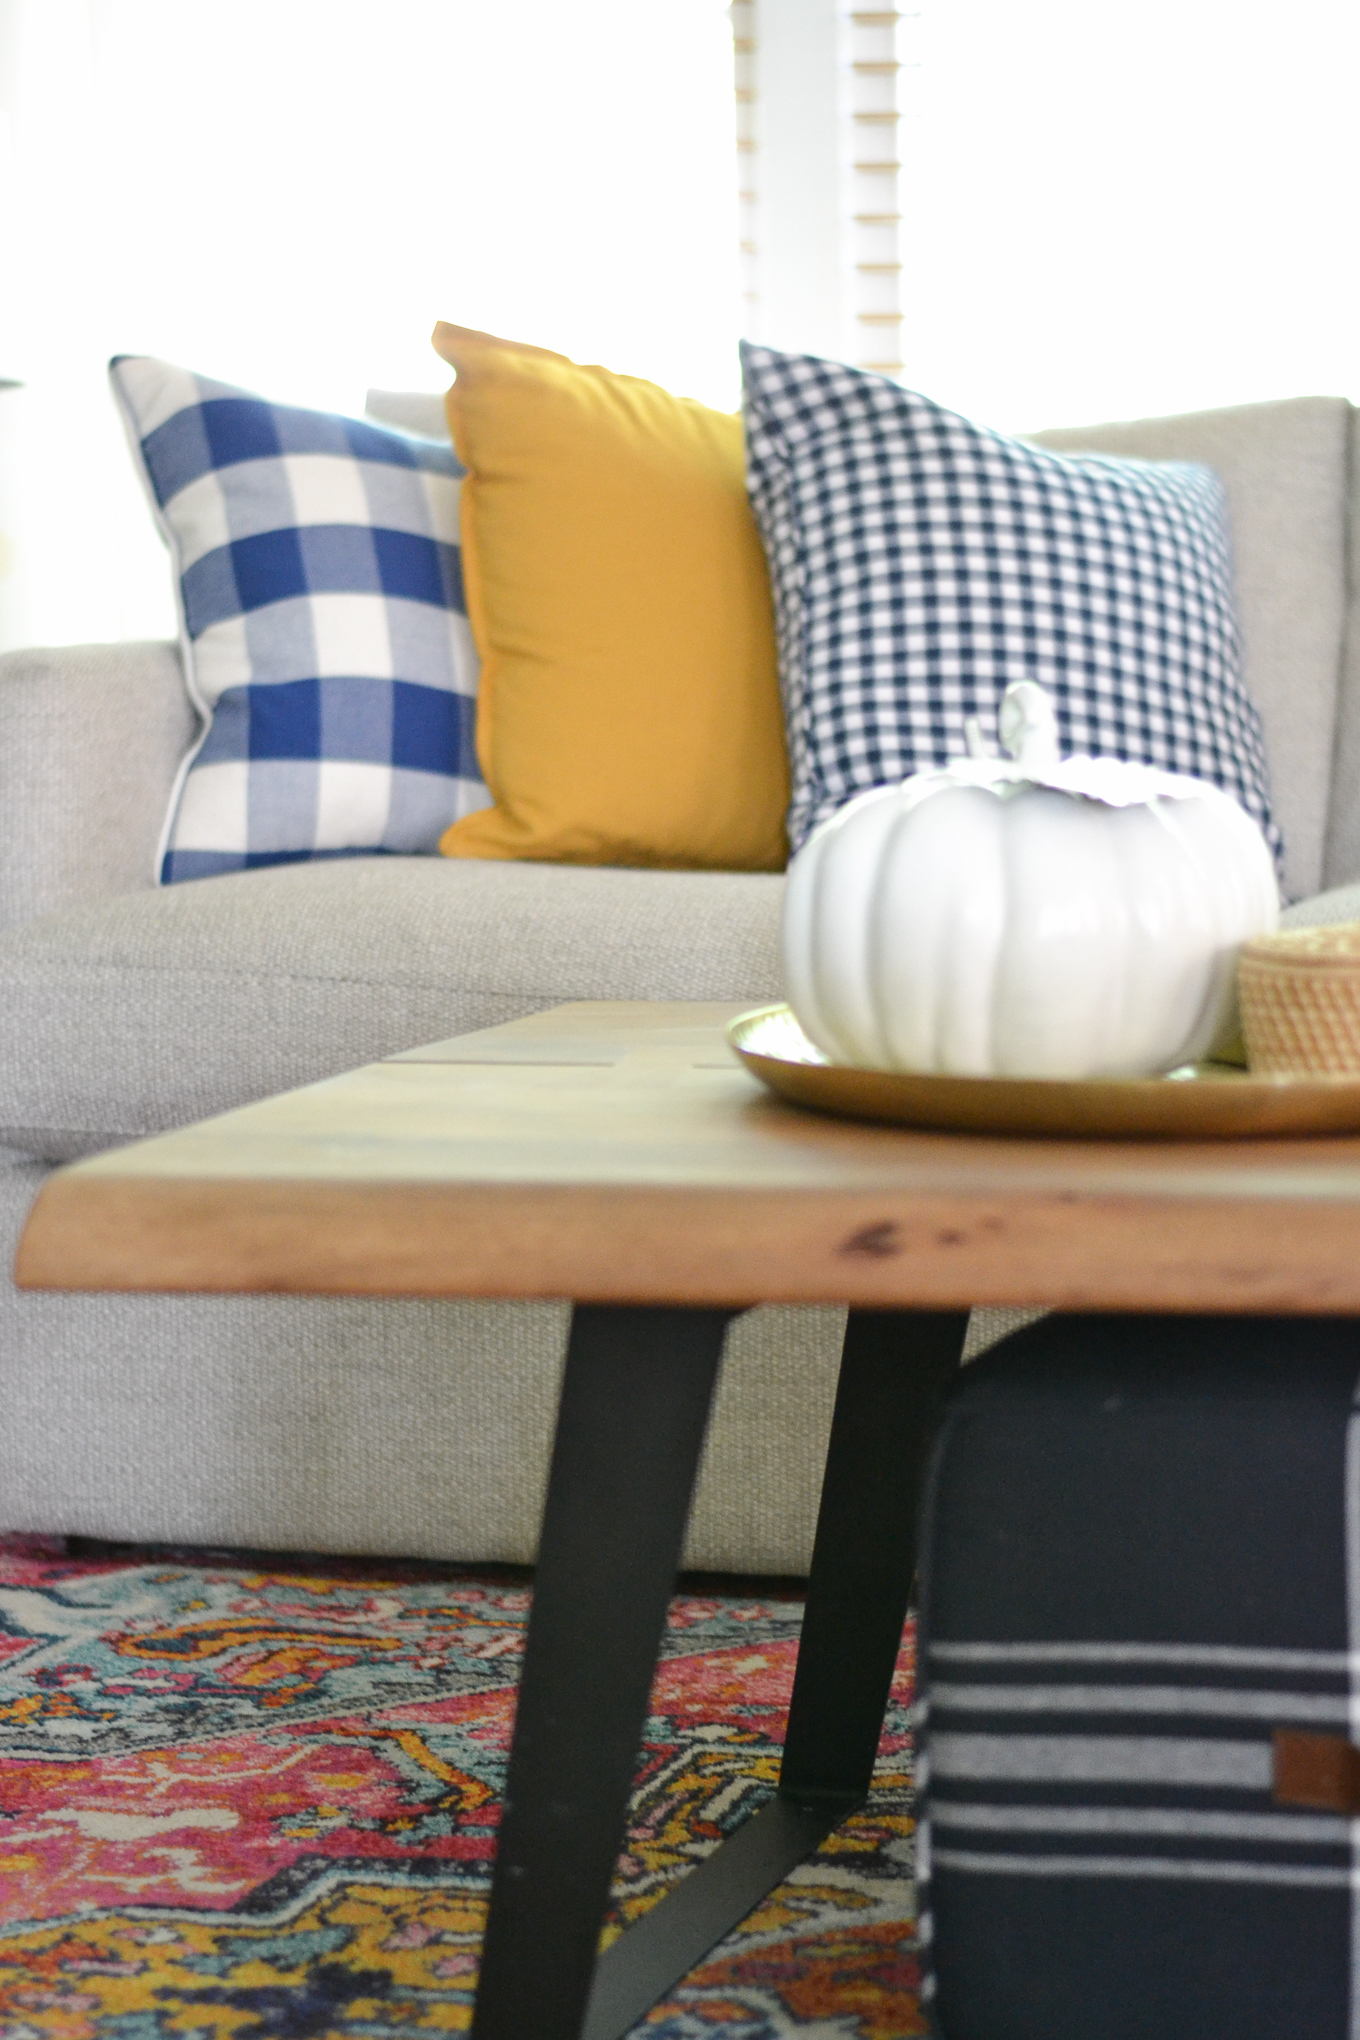 Simple Living Room Decorating Ideas For Fall To Get A Cozy And Chic Space